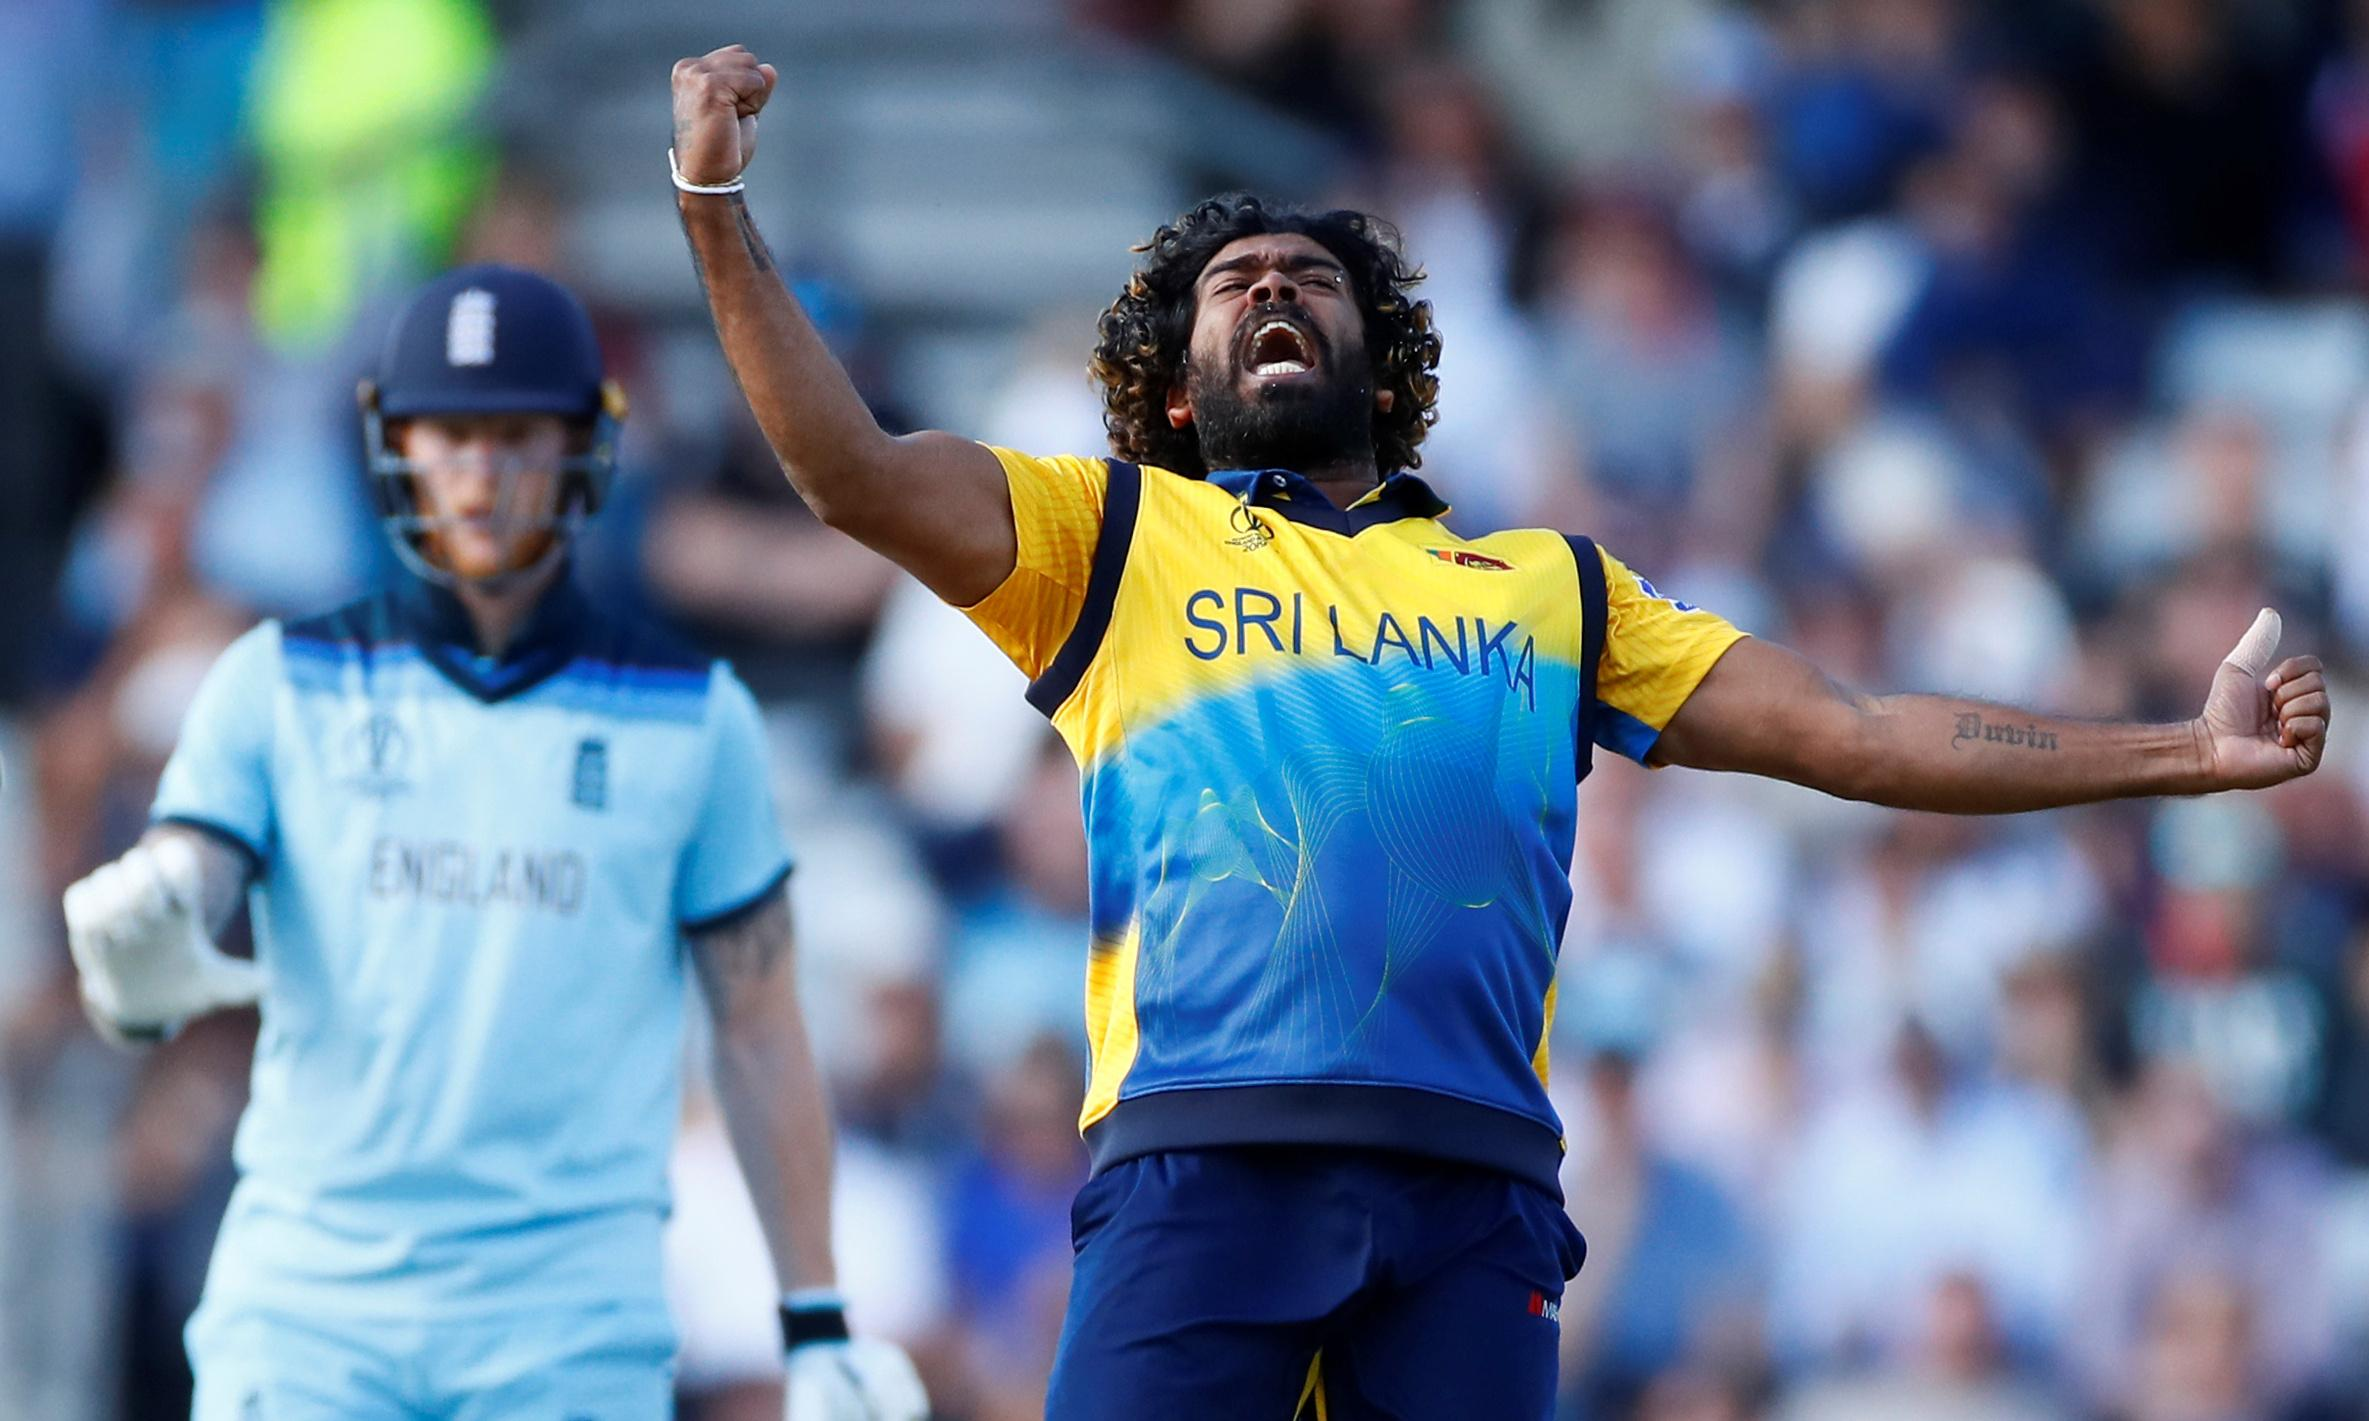 Sri Lanka and Malinga blow away England in World Cup shock